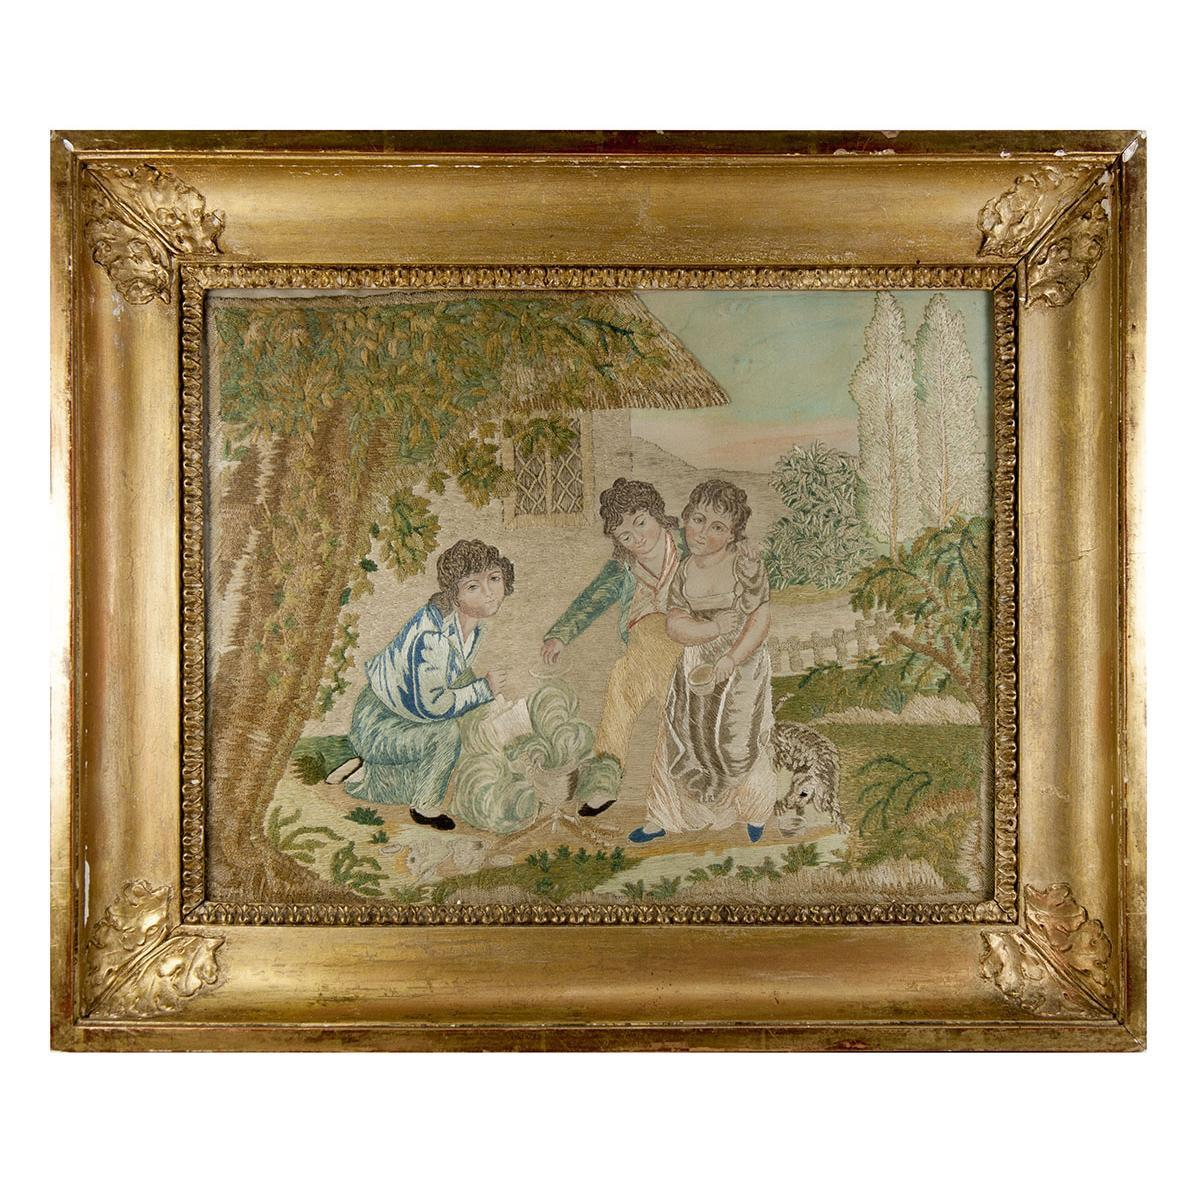 Rare antique c french silk embroidery needlework